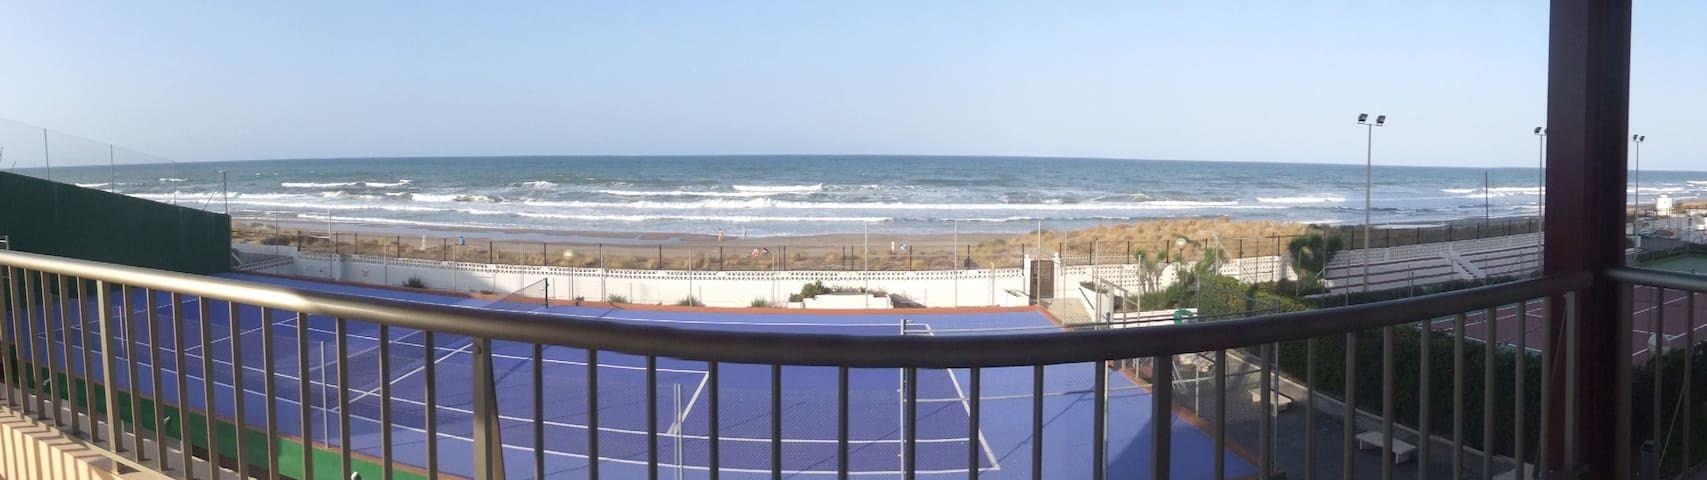 First line 2BR apartment south of Valencia - Mareny de Barraquetes - Apartment